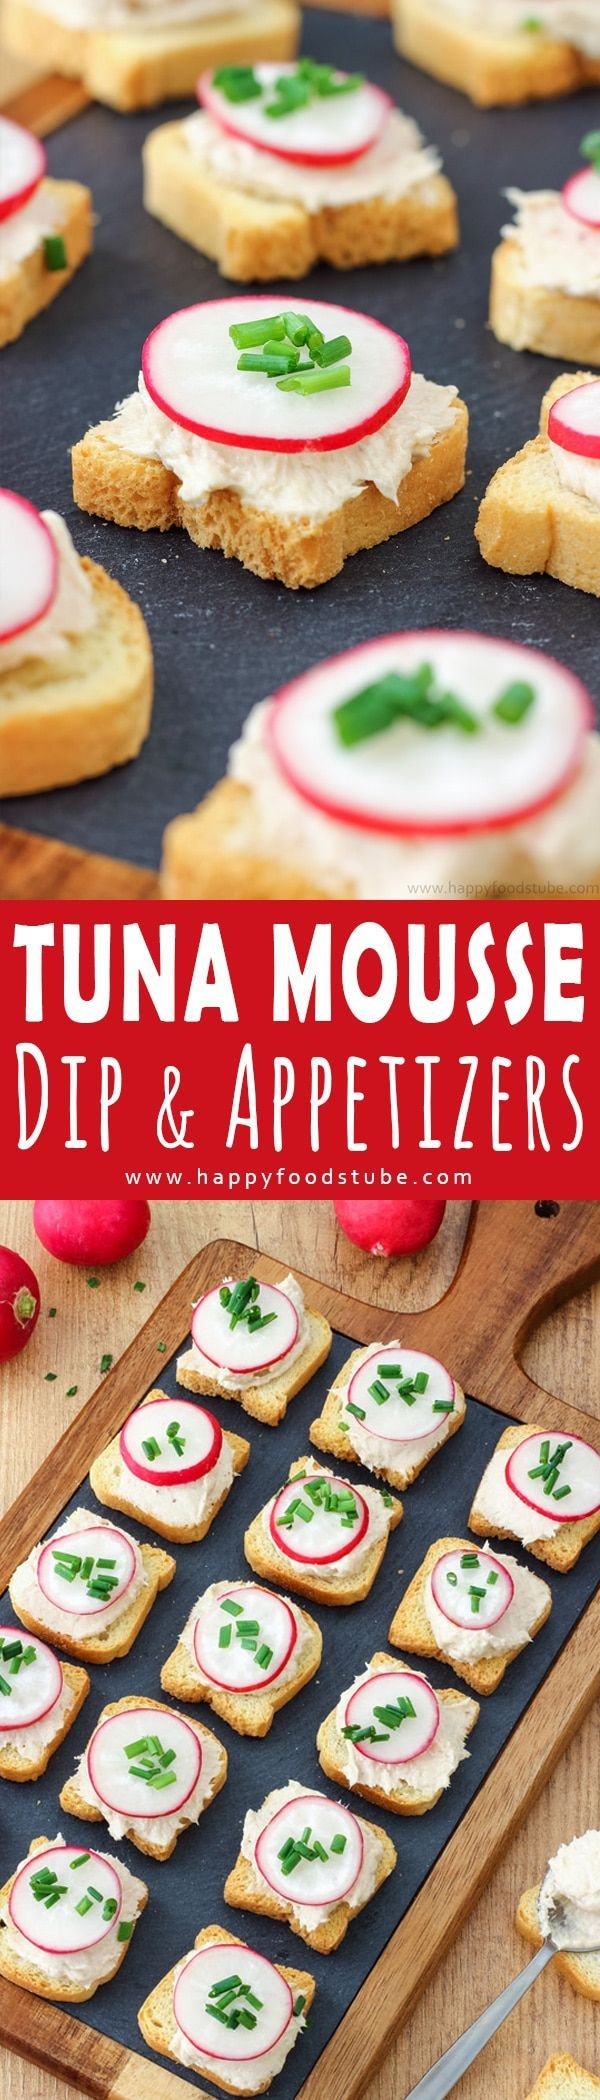 Easy to make Tuna Mousse Dip and Appetizers. Looking for easy party food ideas. This bite size tuna appetizers are quick and easy to make. Only 5 ingredients and ready in 15 minutes. How to make tuna mousse. Here is a quick step by step video via @happyfoodstube